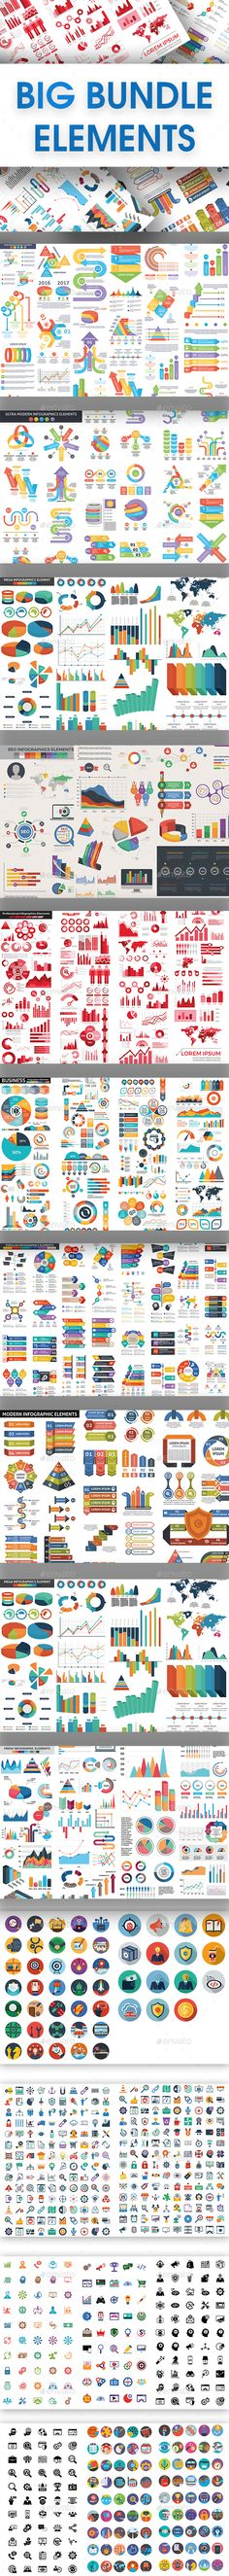 Big Bundle Elements Template PSD, Vector EPS, AI Illustrator - 580 Icons Included